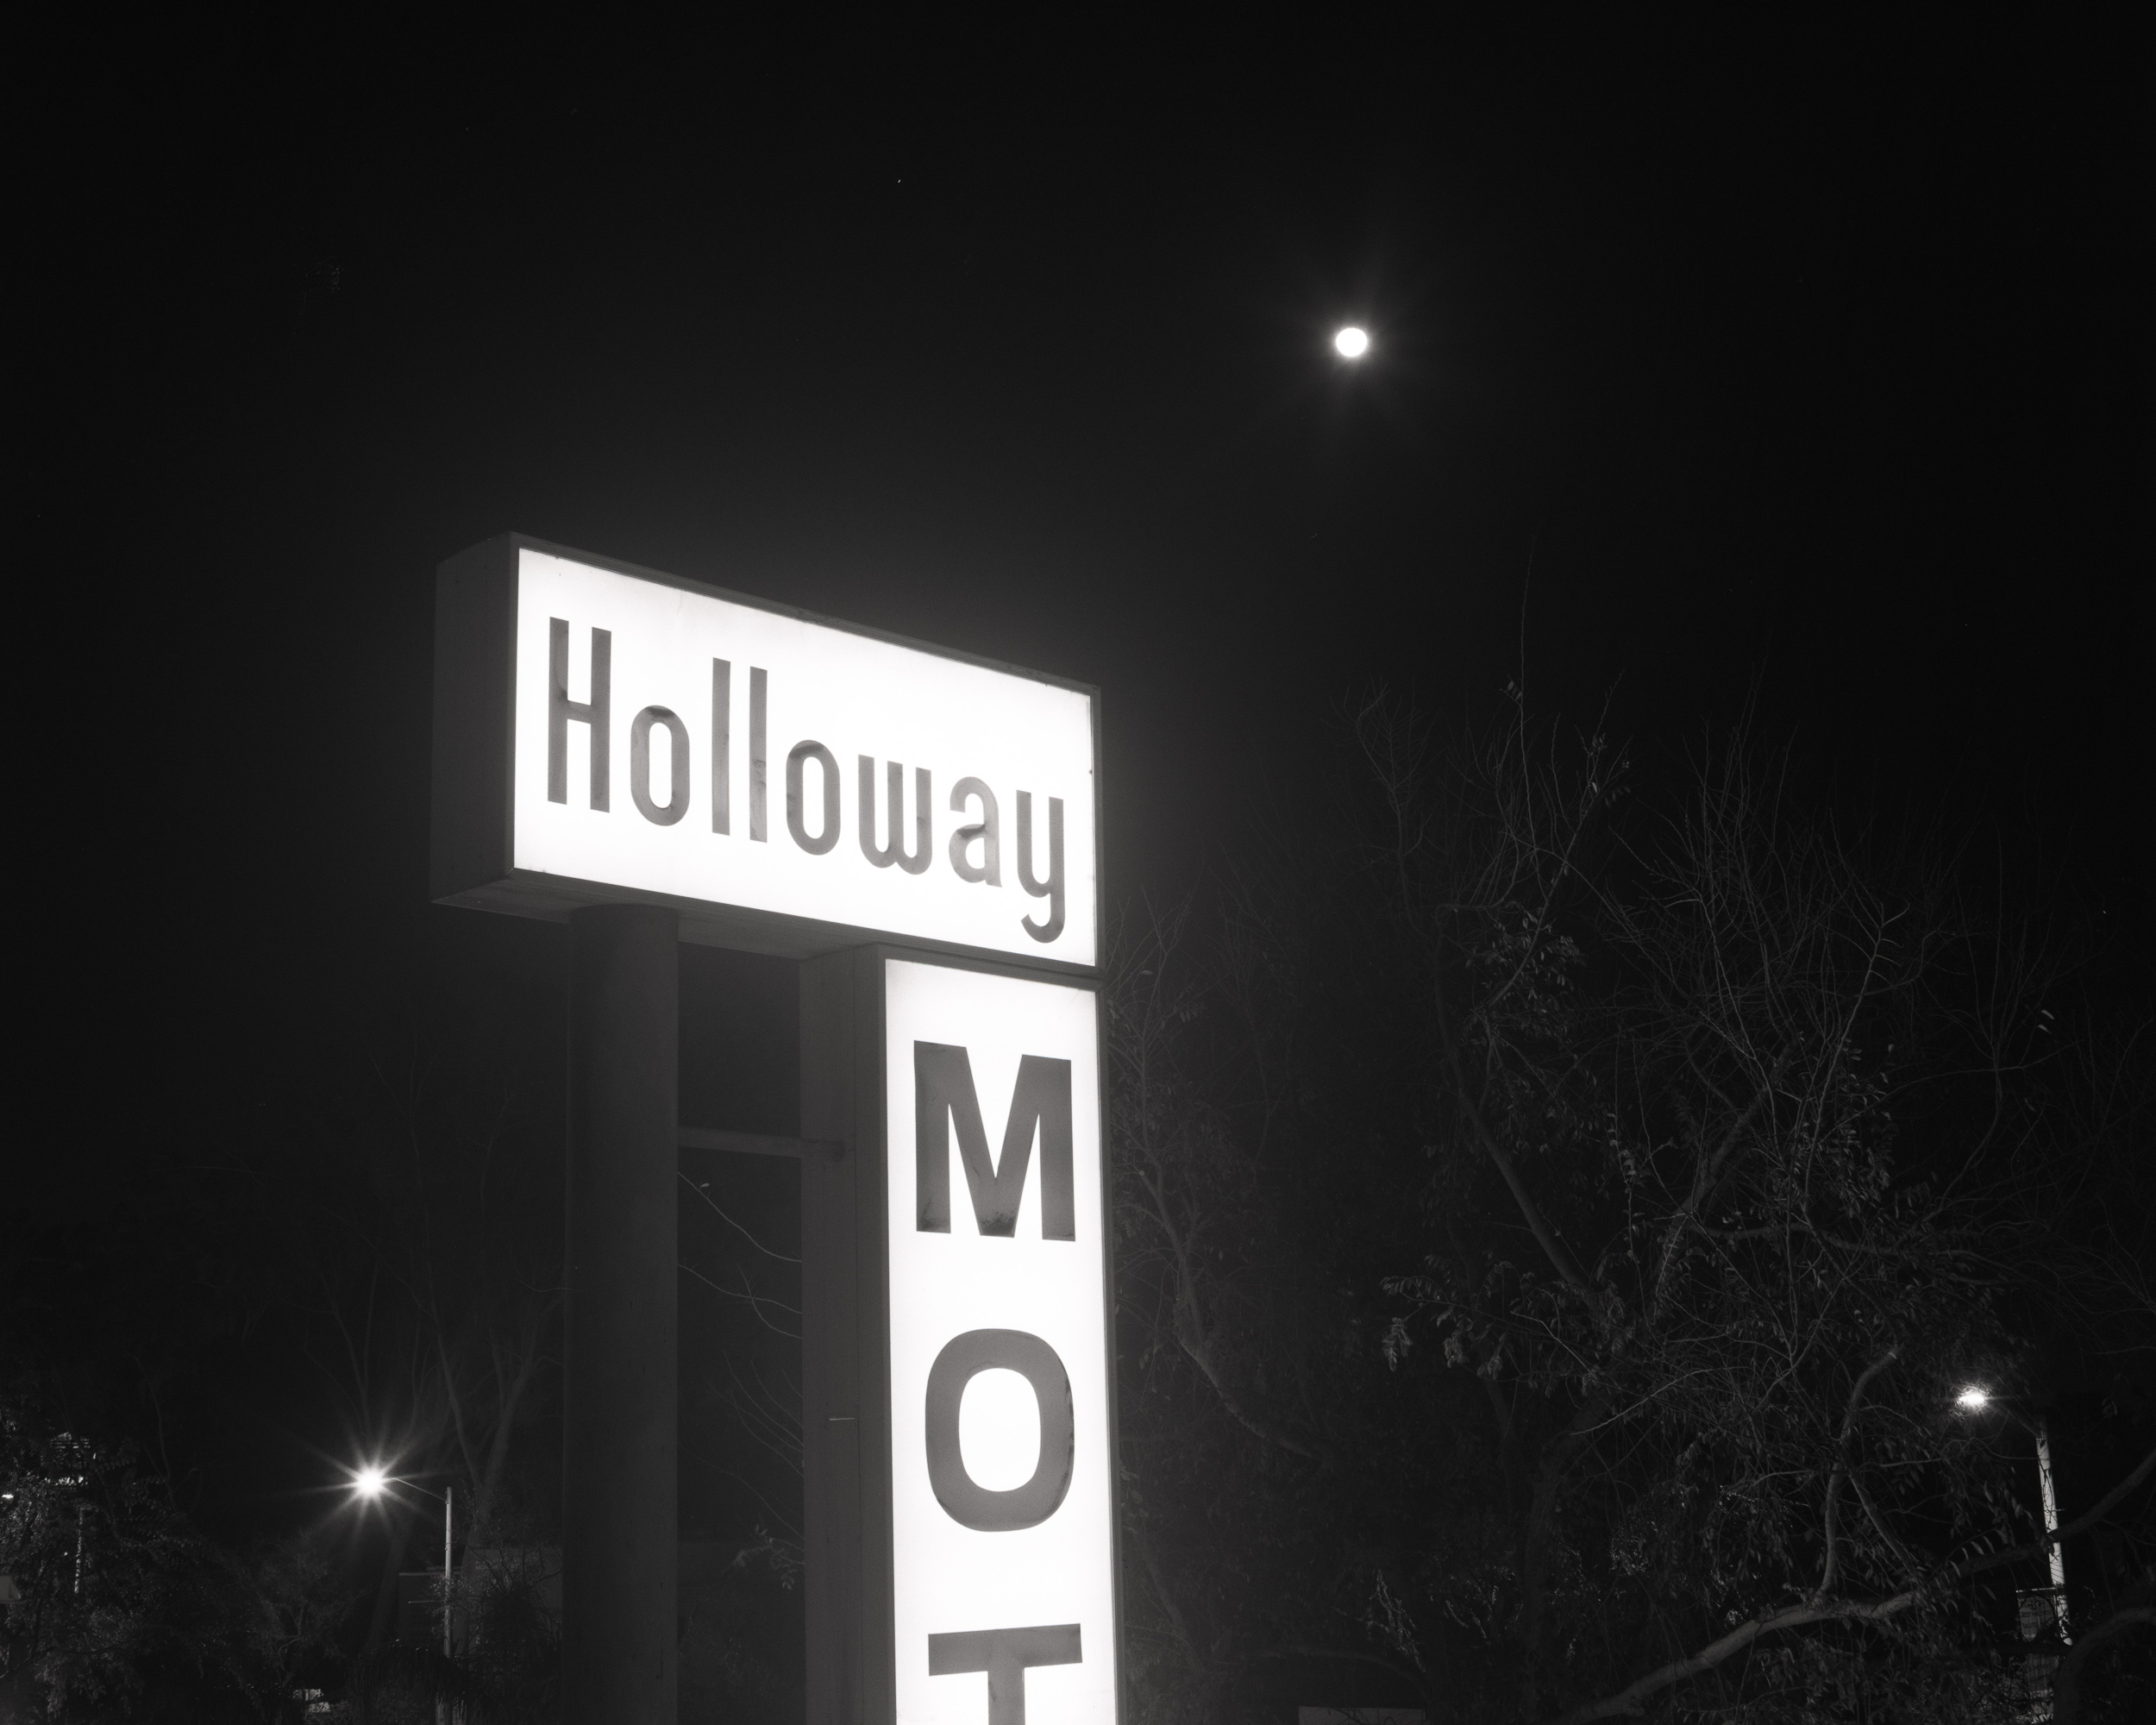 The Holloway Motel